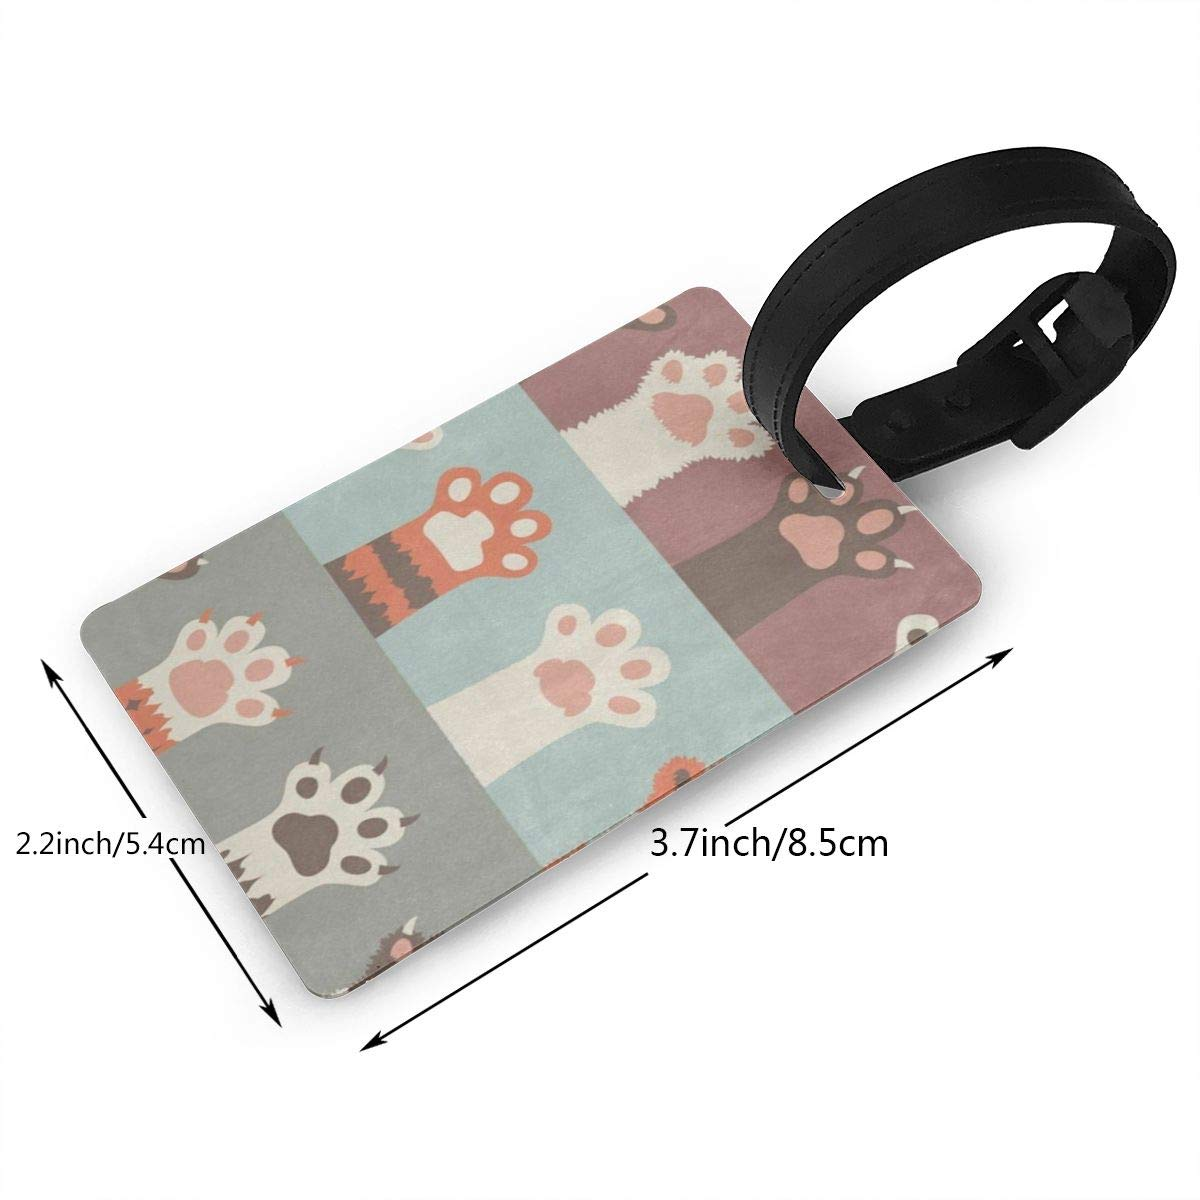 Luggage Tags Vintage Balloon Blue Sky Bag Tag for Travel 2 PCS